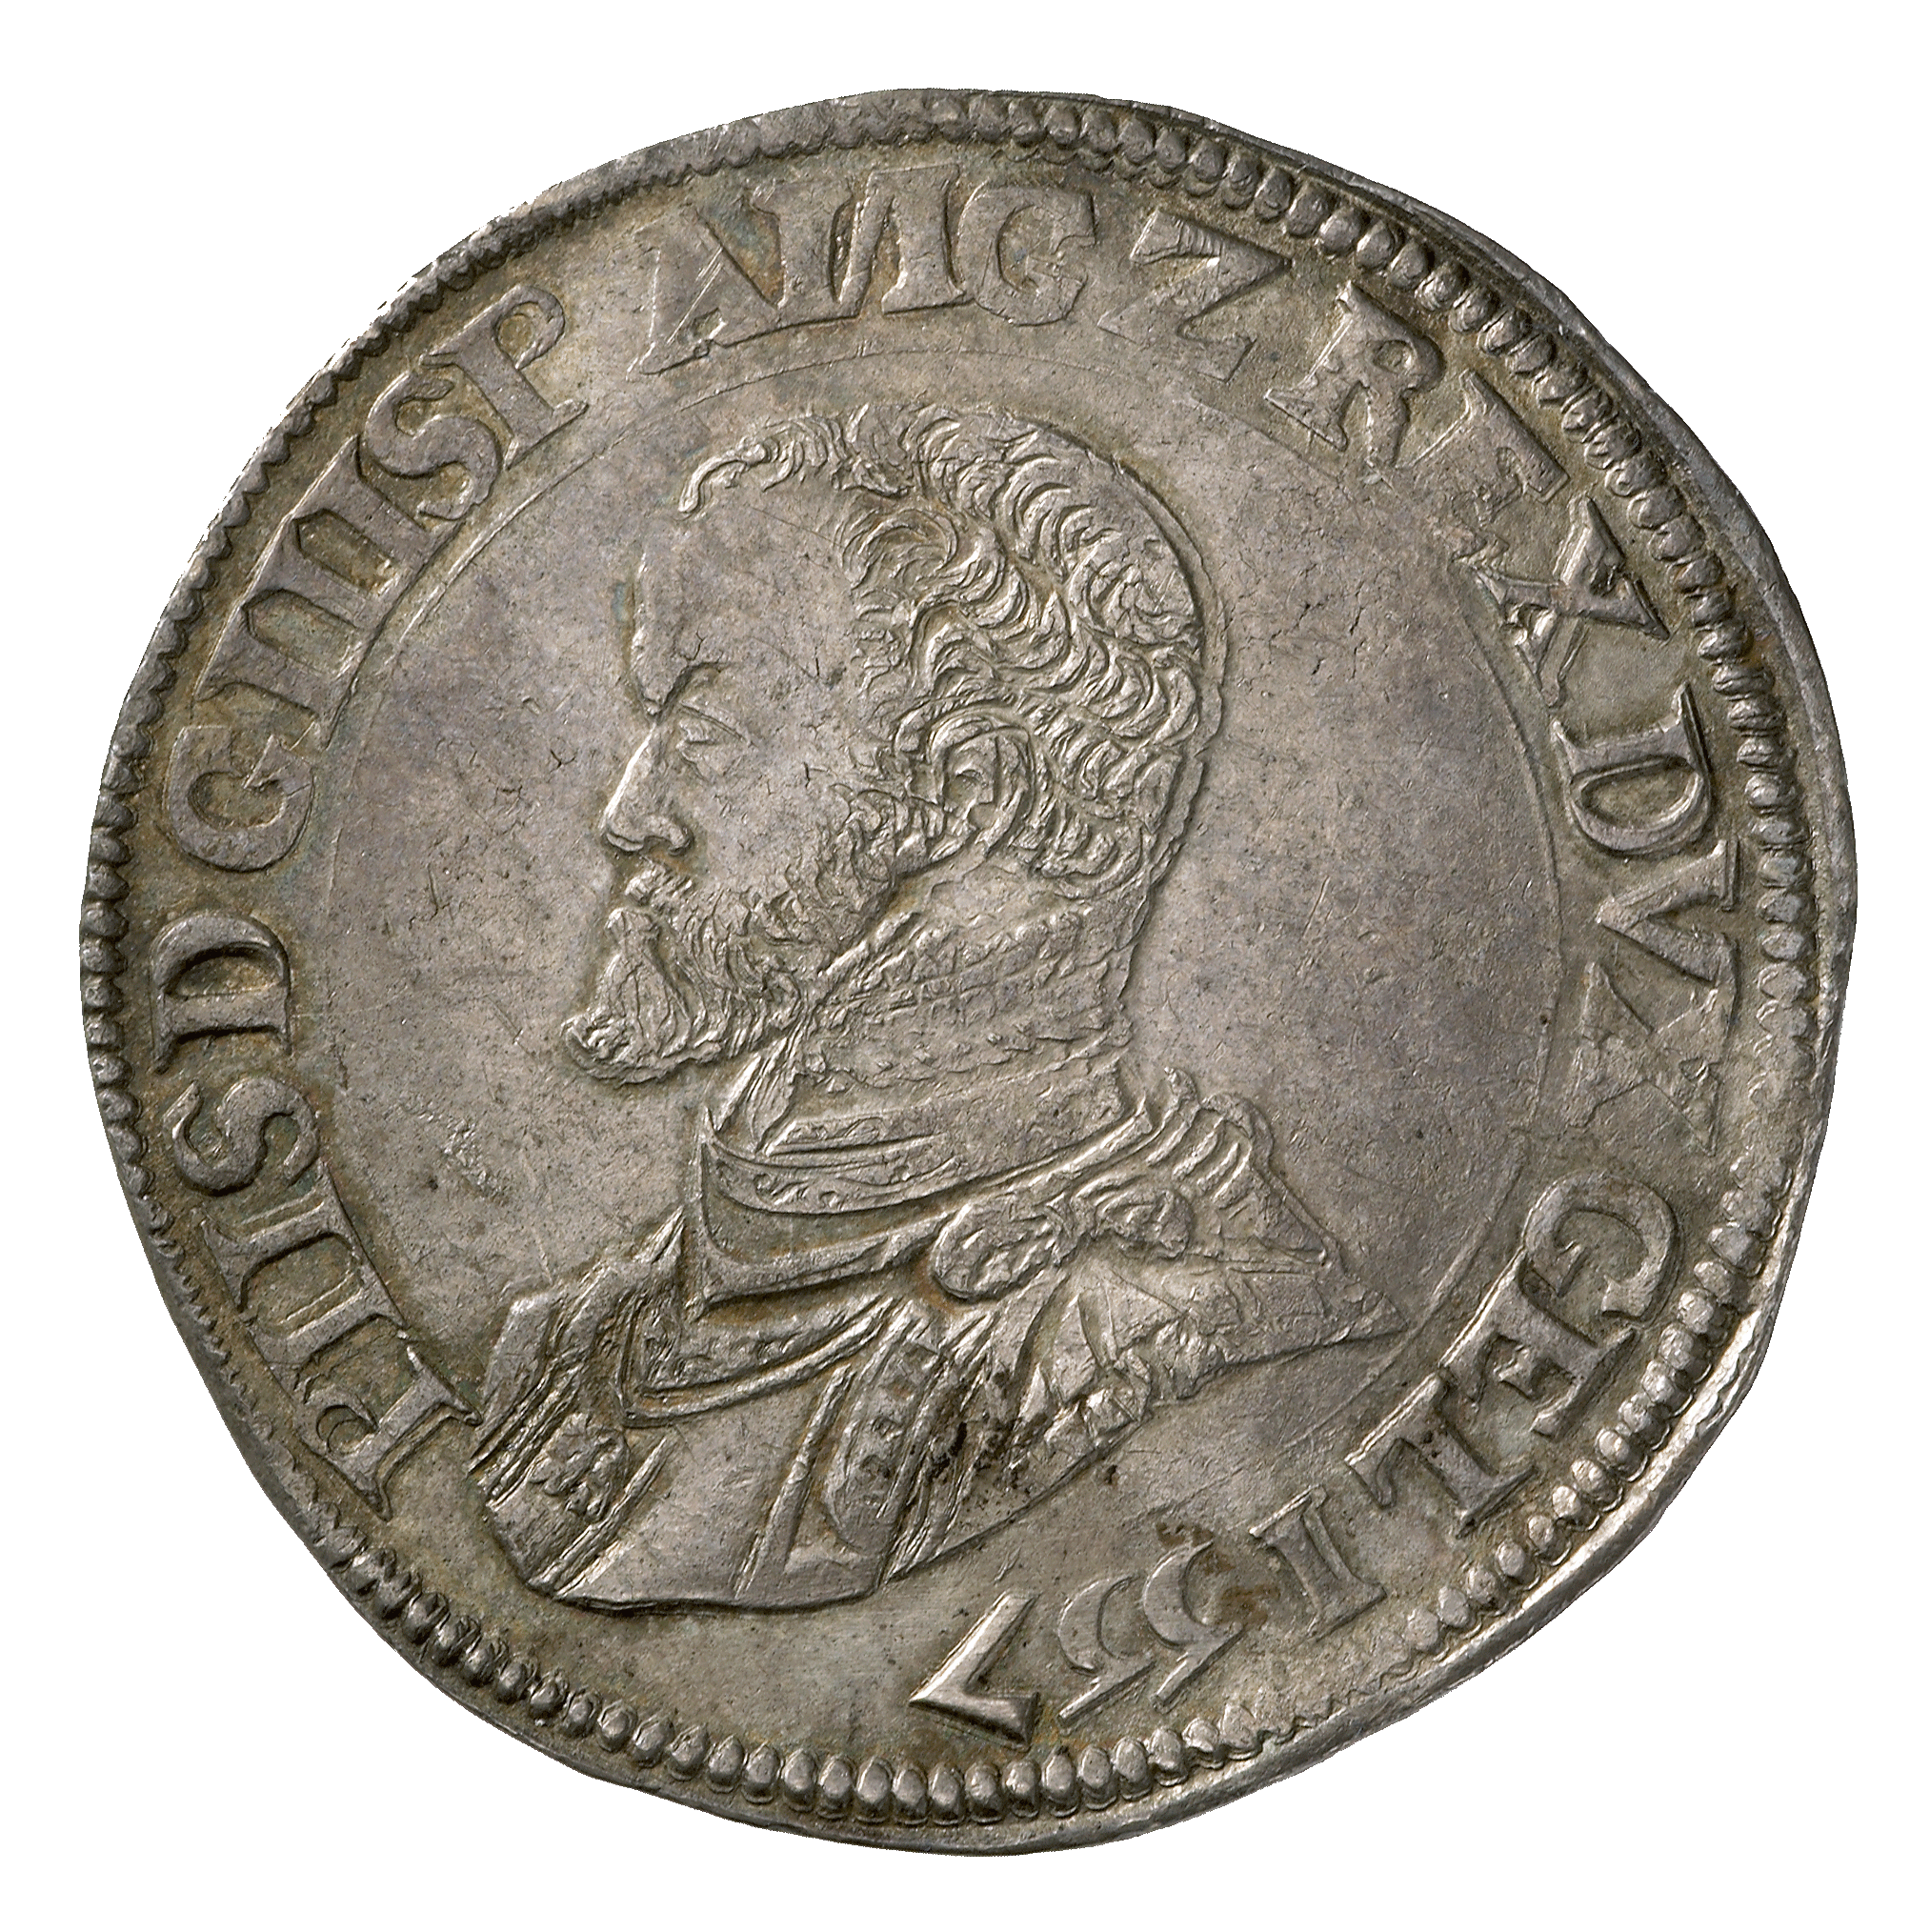 Holy Roman Empire, Duchy of Gelderland, Philip II of Spain, Philippstaler 1557 (obverse)